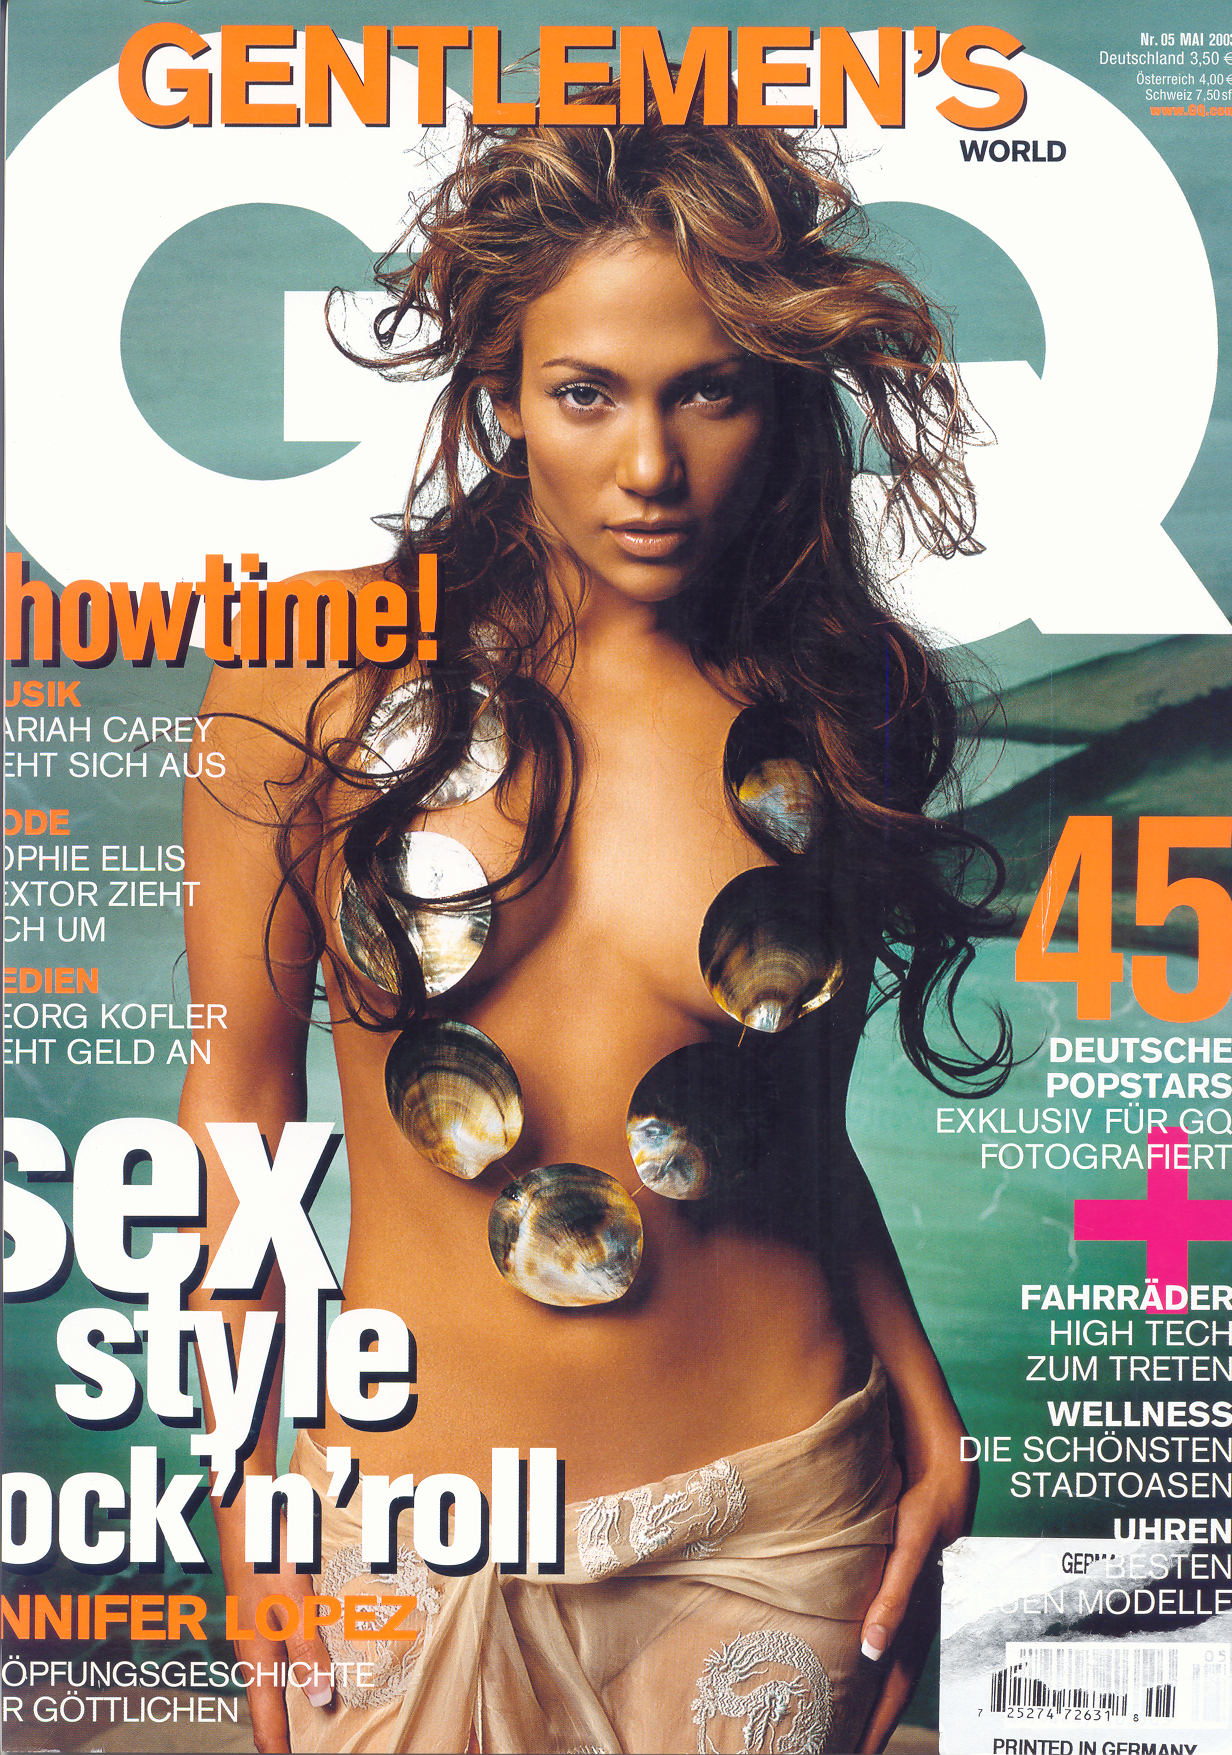 German GQ MAY 2003 COVER copy.jpg